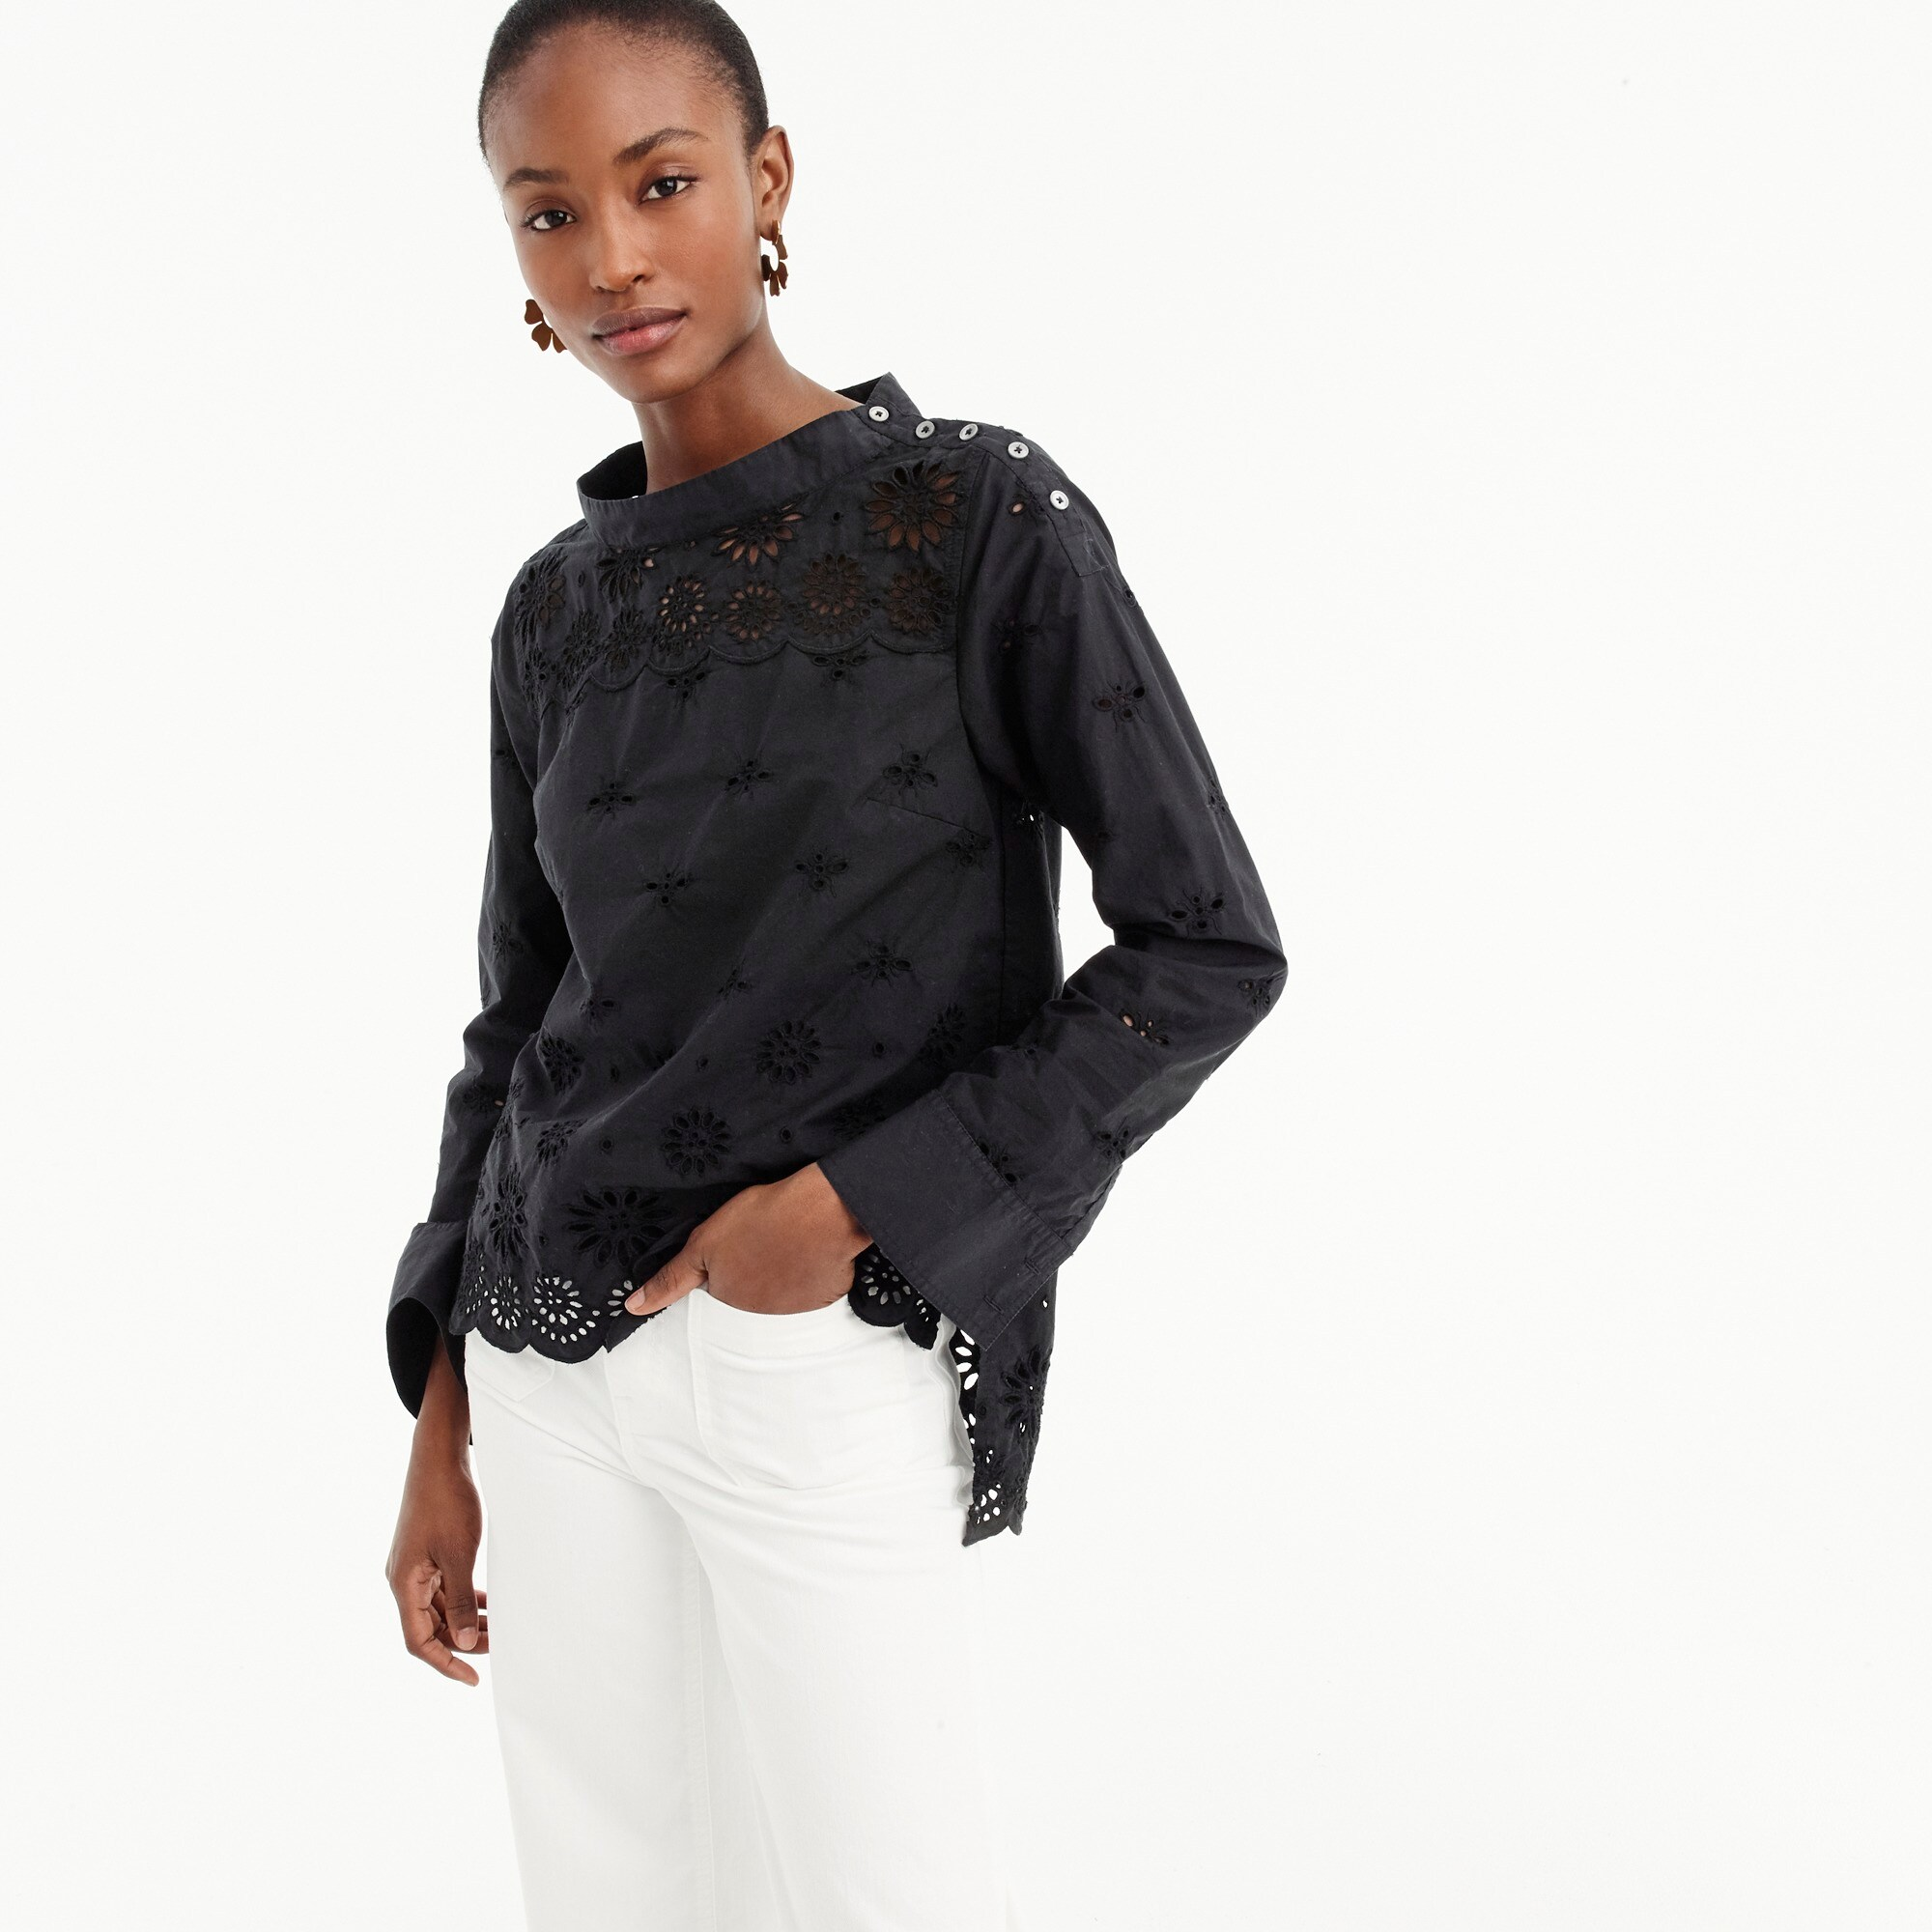 Tall funnelneck shirt in eyelet